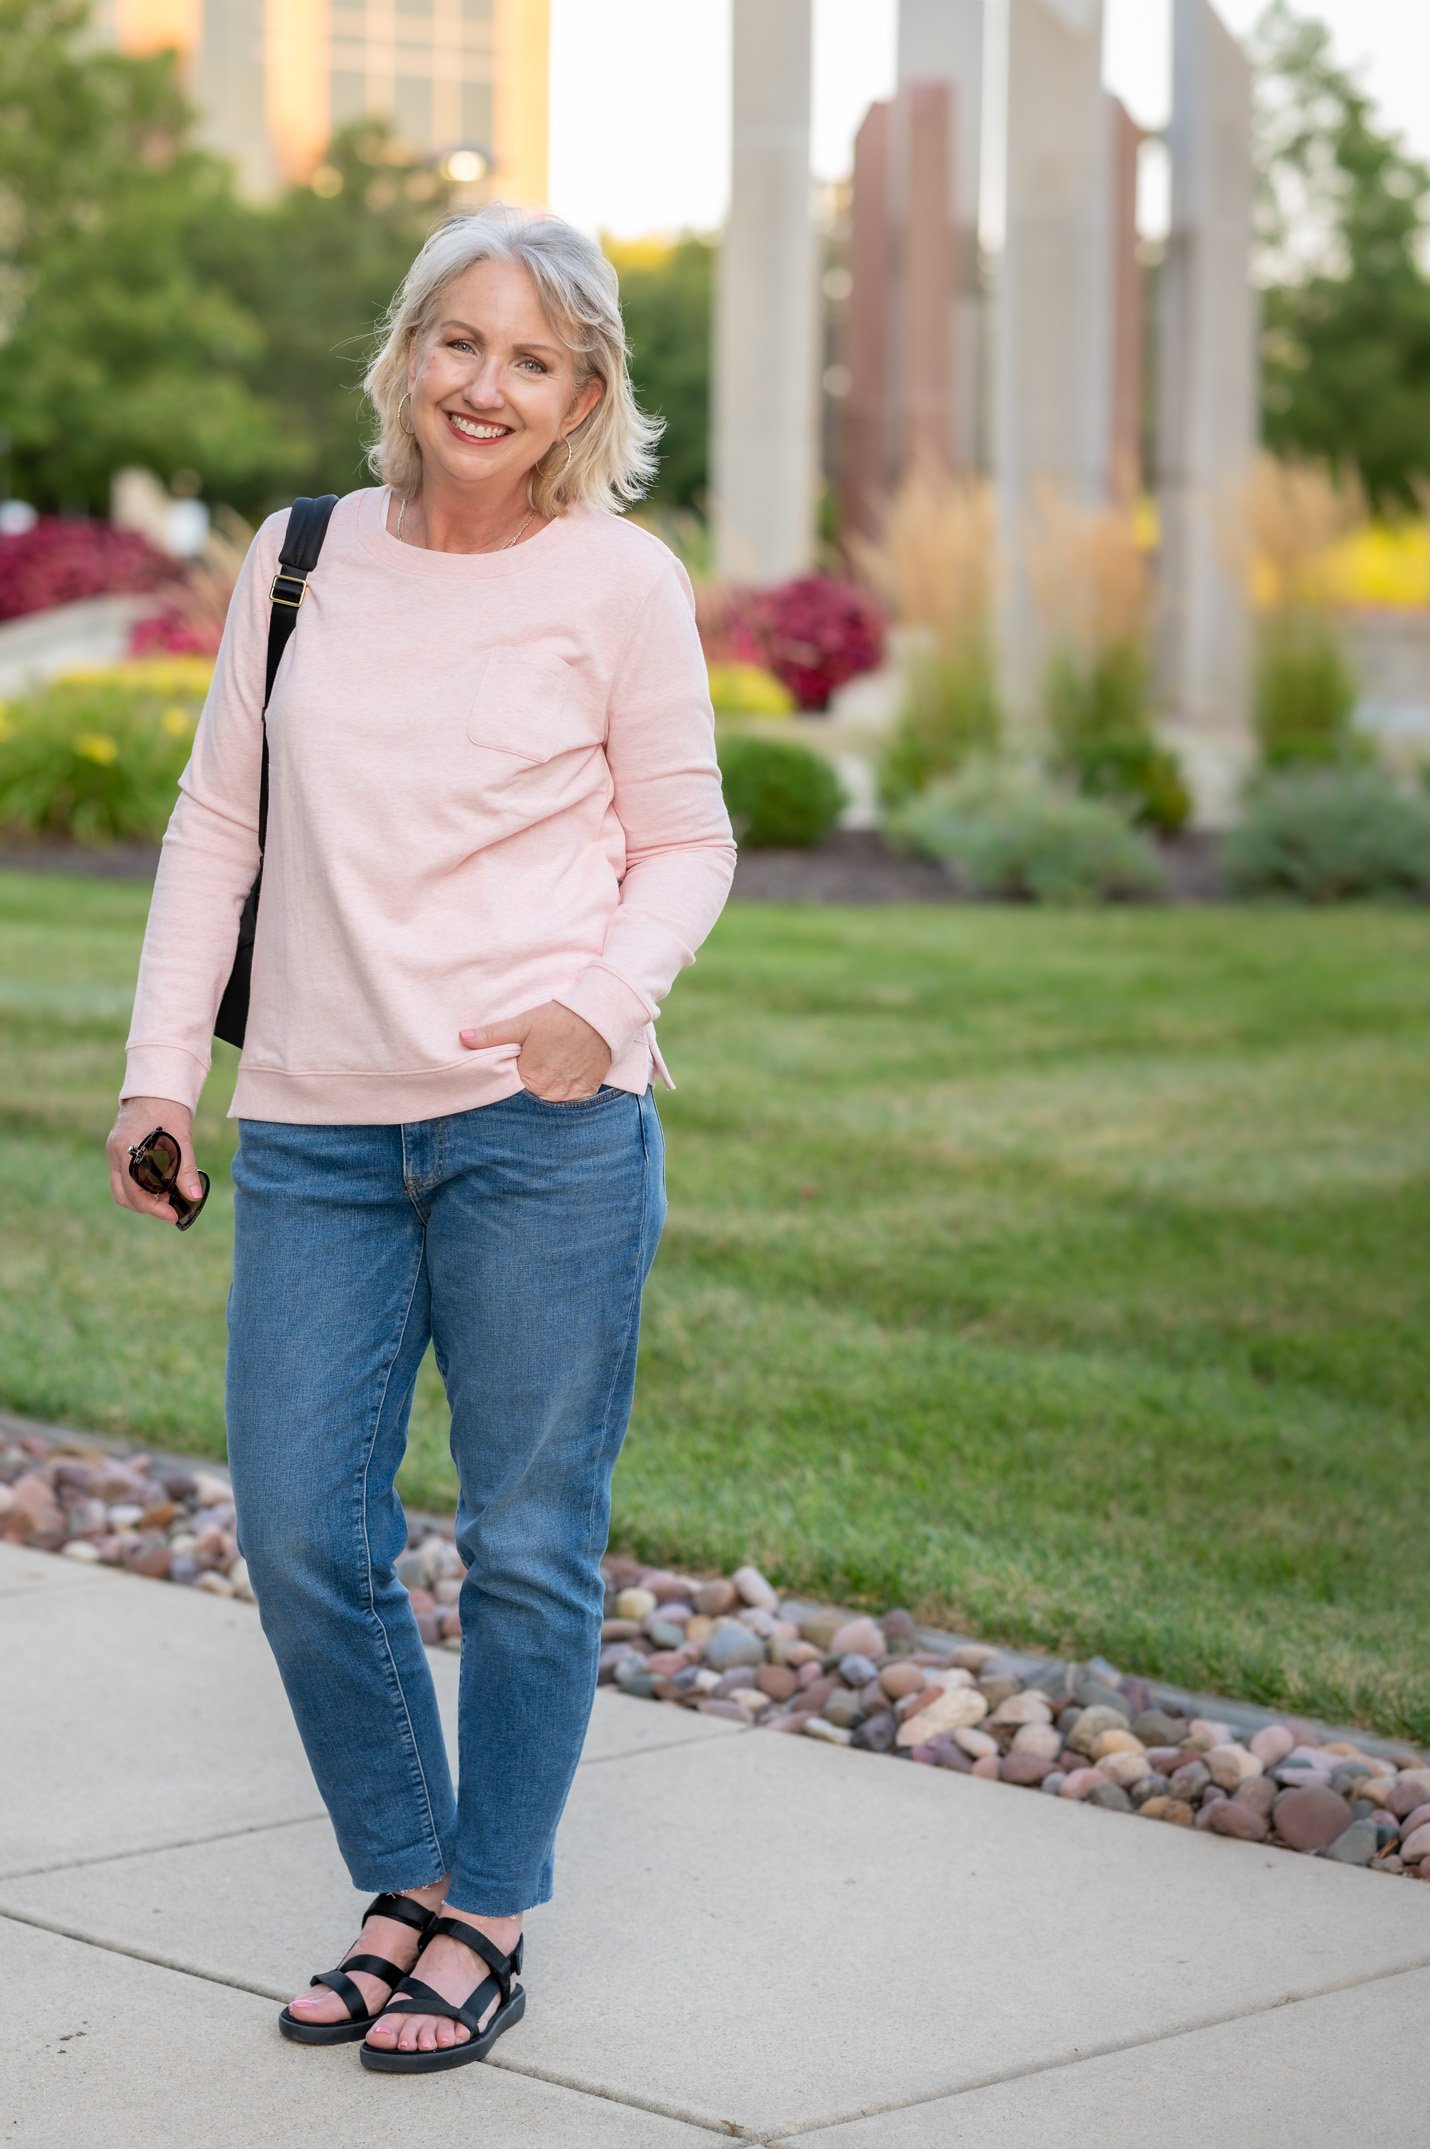 Transition Into Fall with a Pretty Sweatshirt